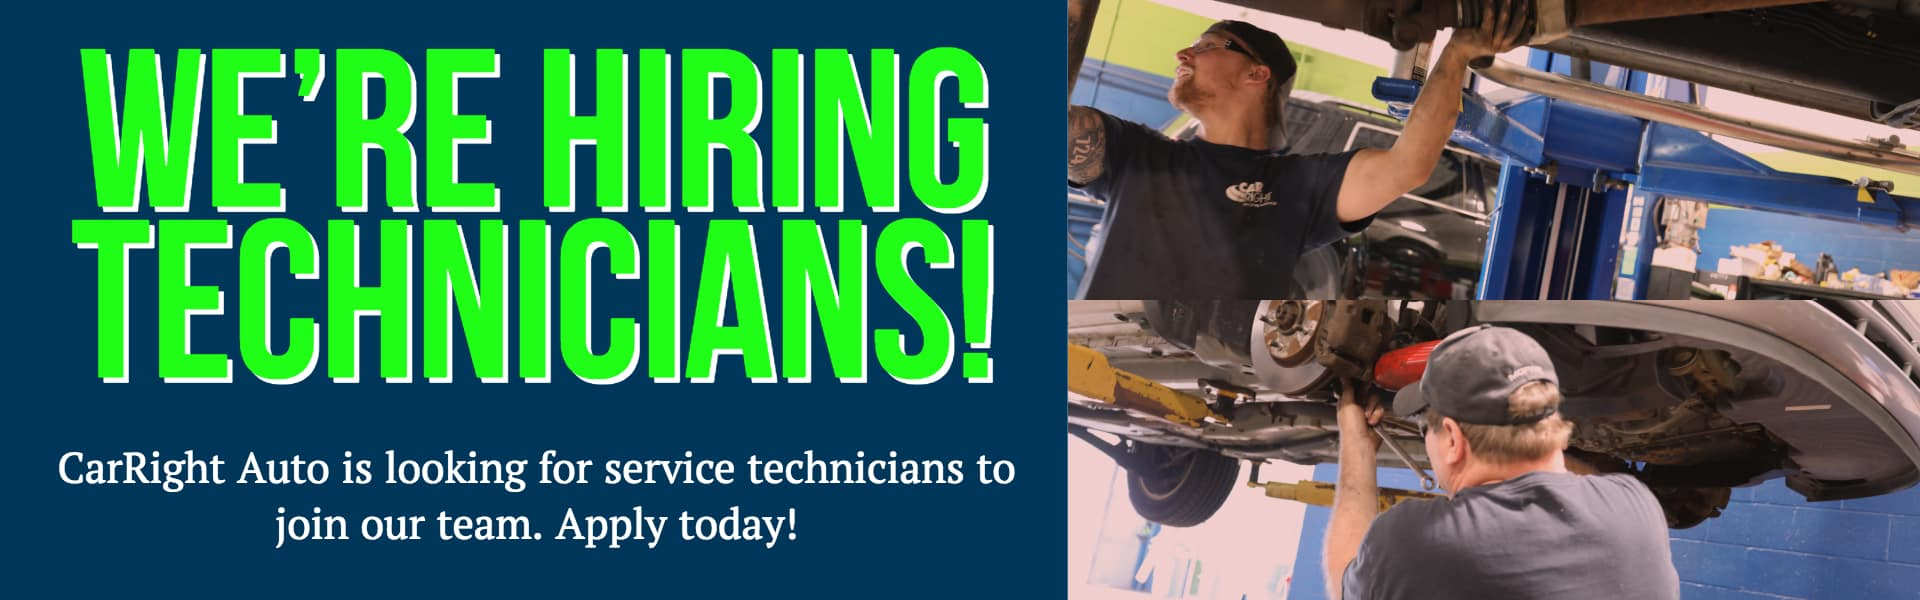 carright auto jobs service technician now hiring pittsburgh pa moon township